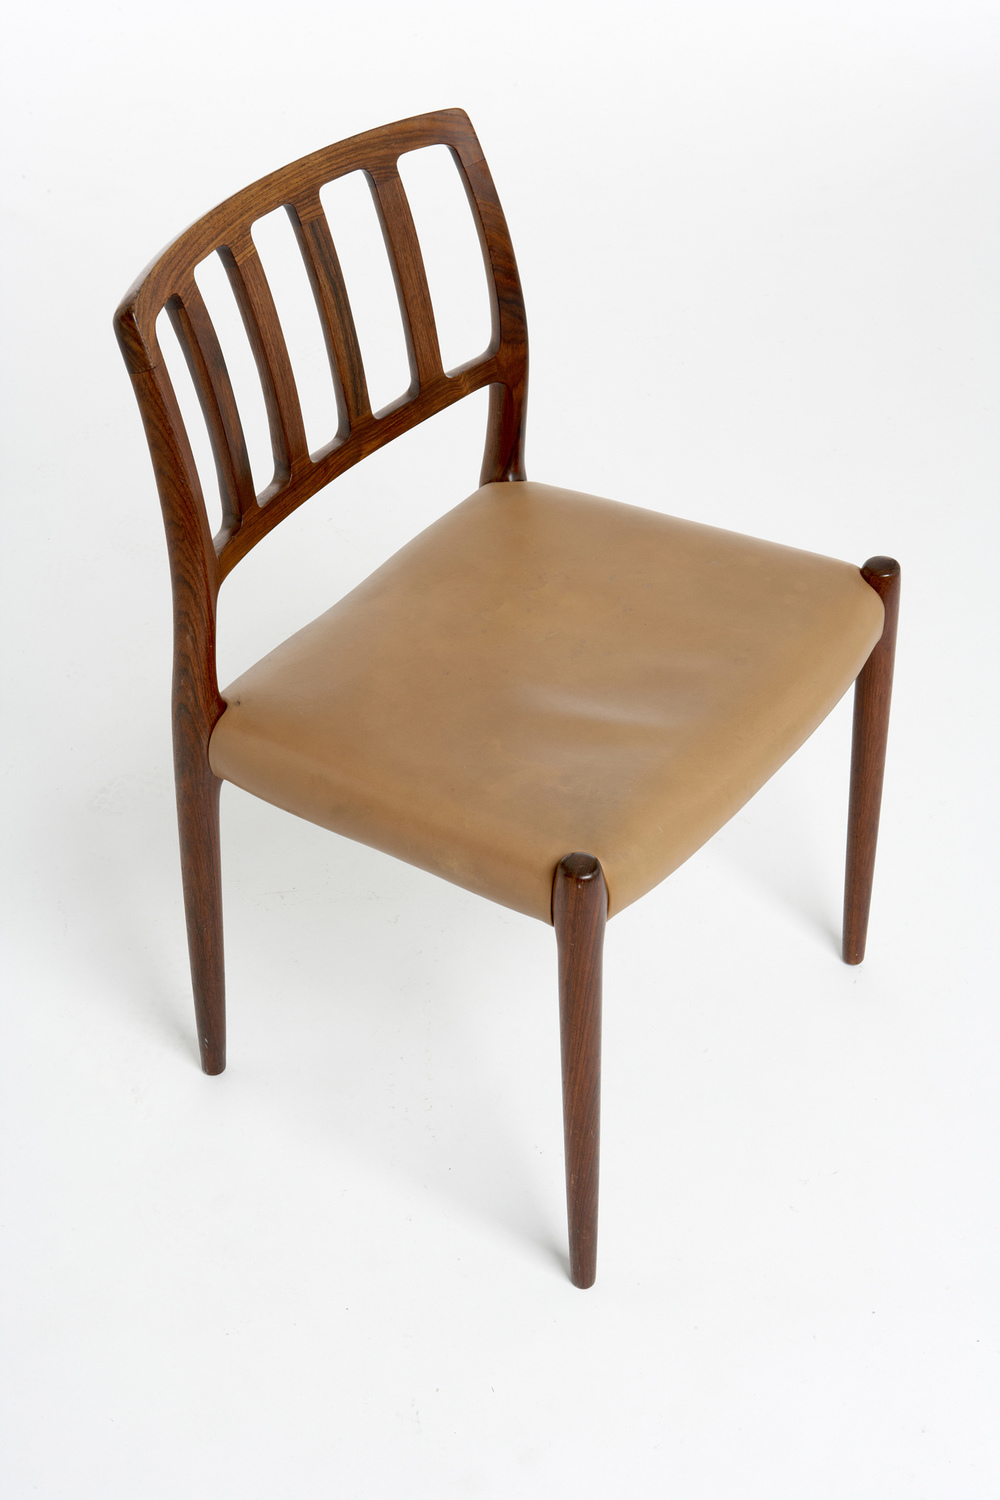 N O Moller 1974 Dining Chair • made 1974-90 •